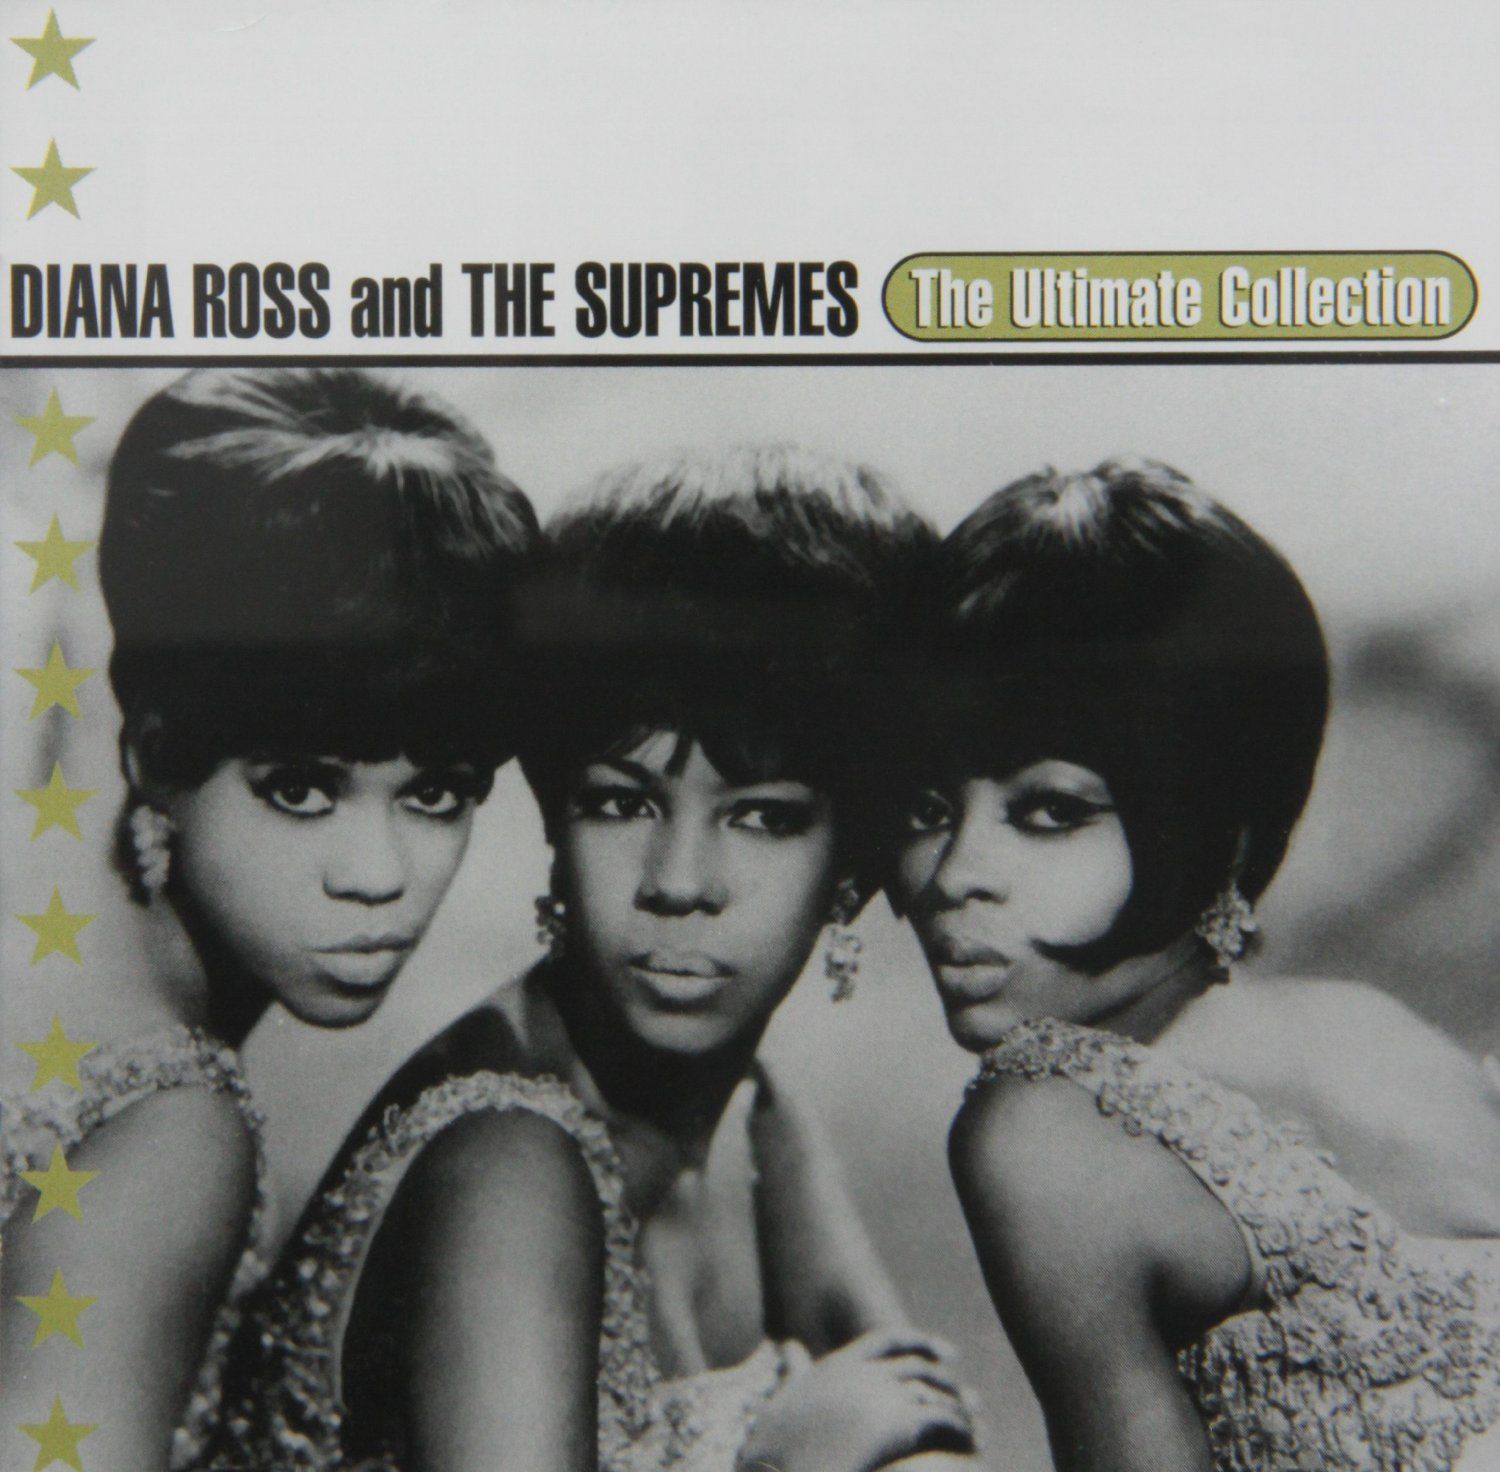 The Ultimate Collection Diana Ross & The Supremes by